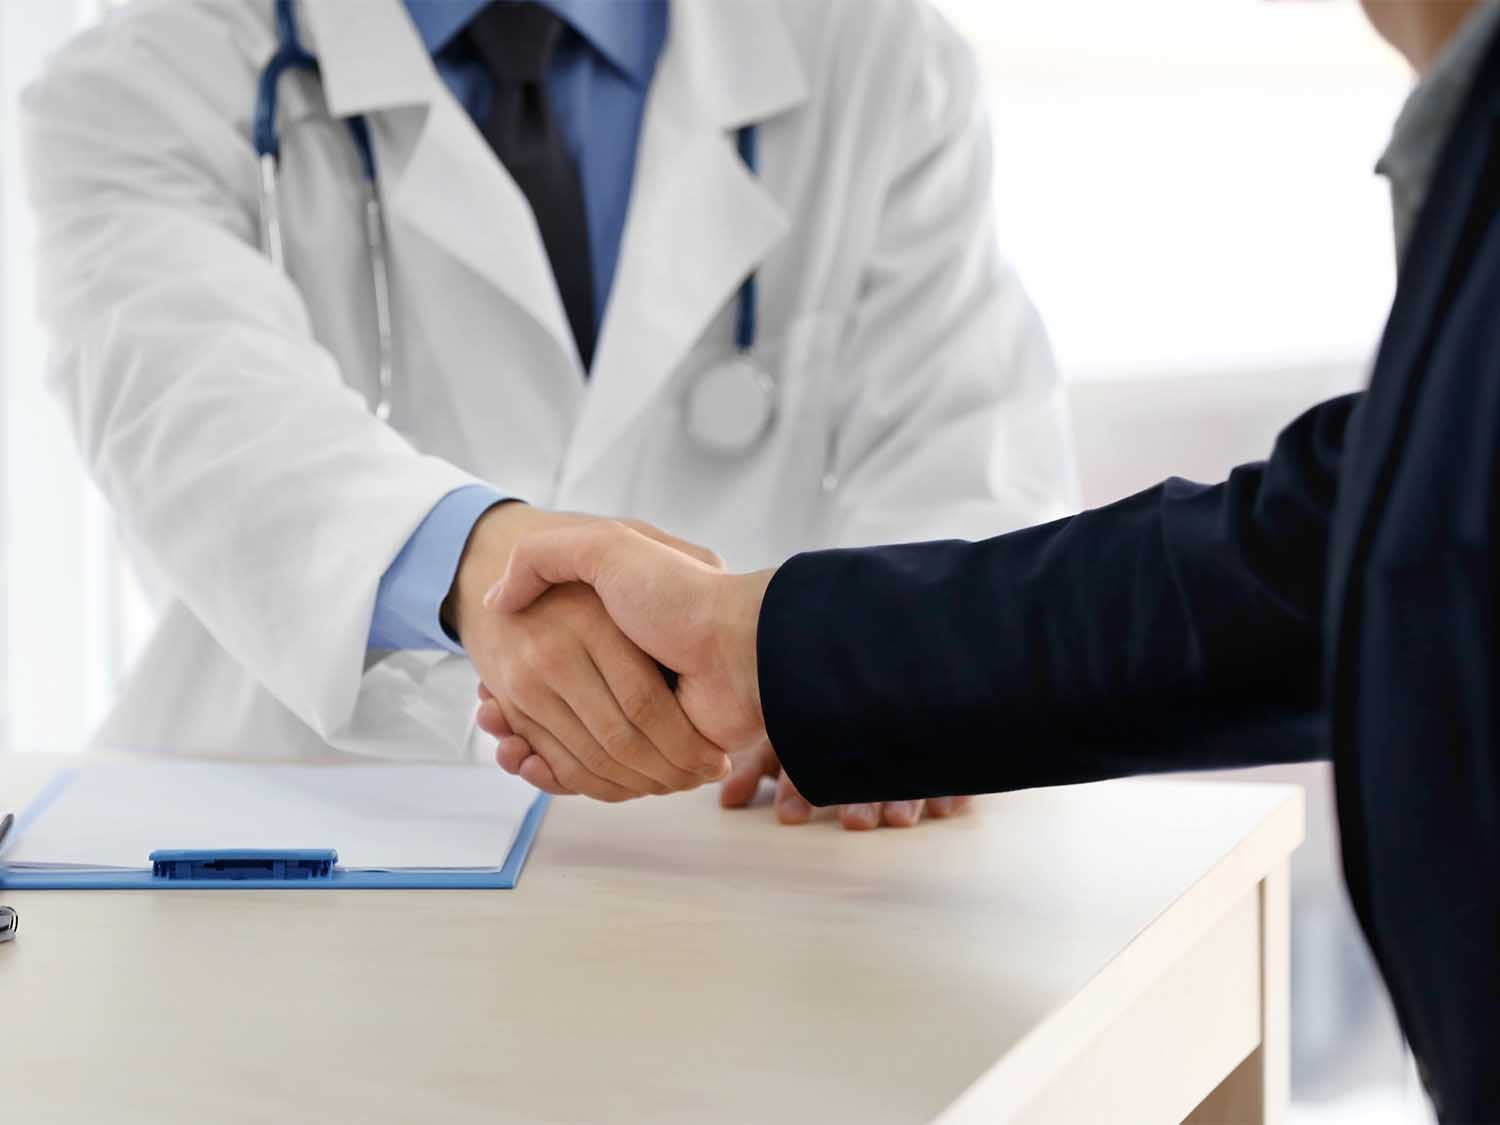 A Medical Malpractice Insurance Broker And Doctor Shaking Hands